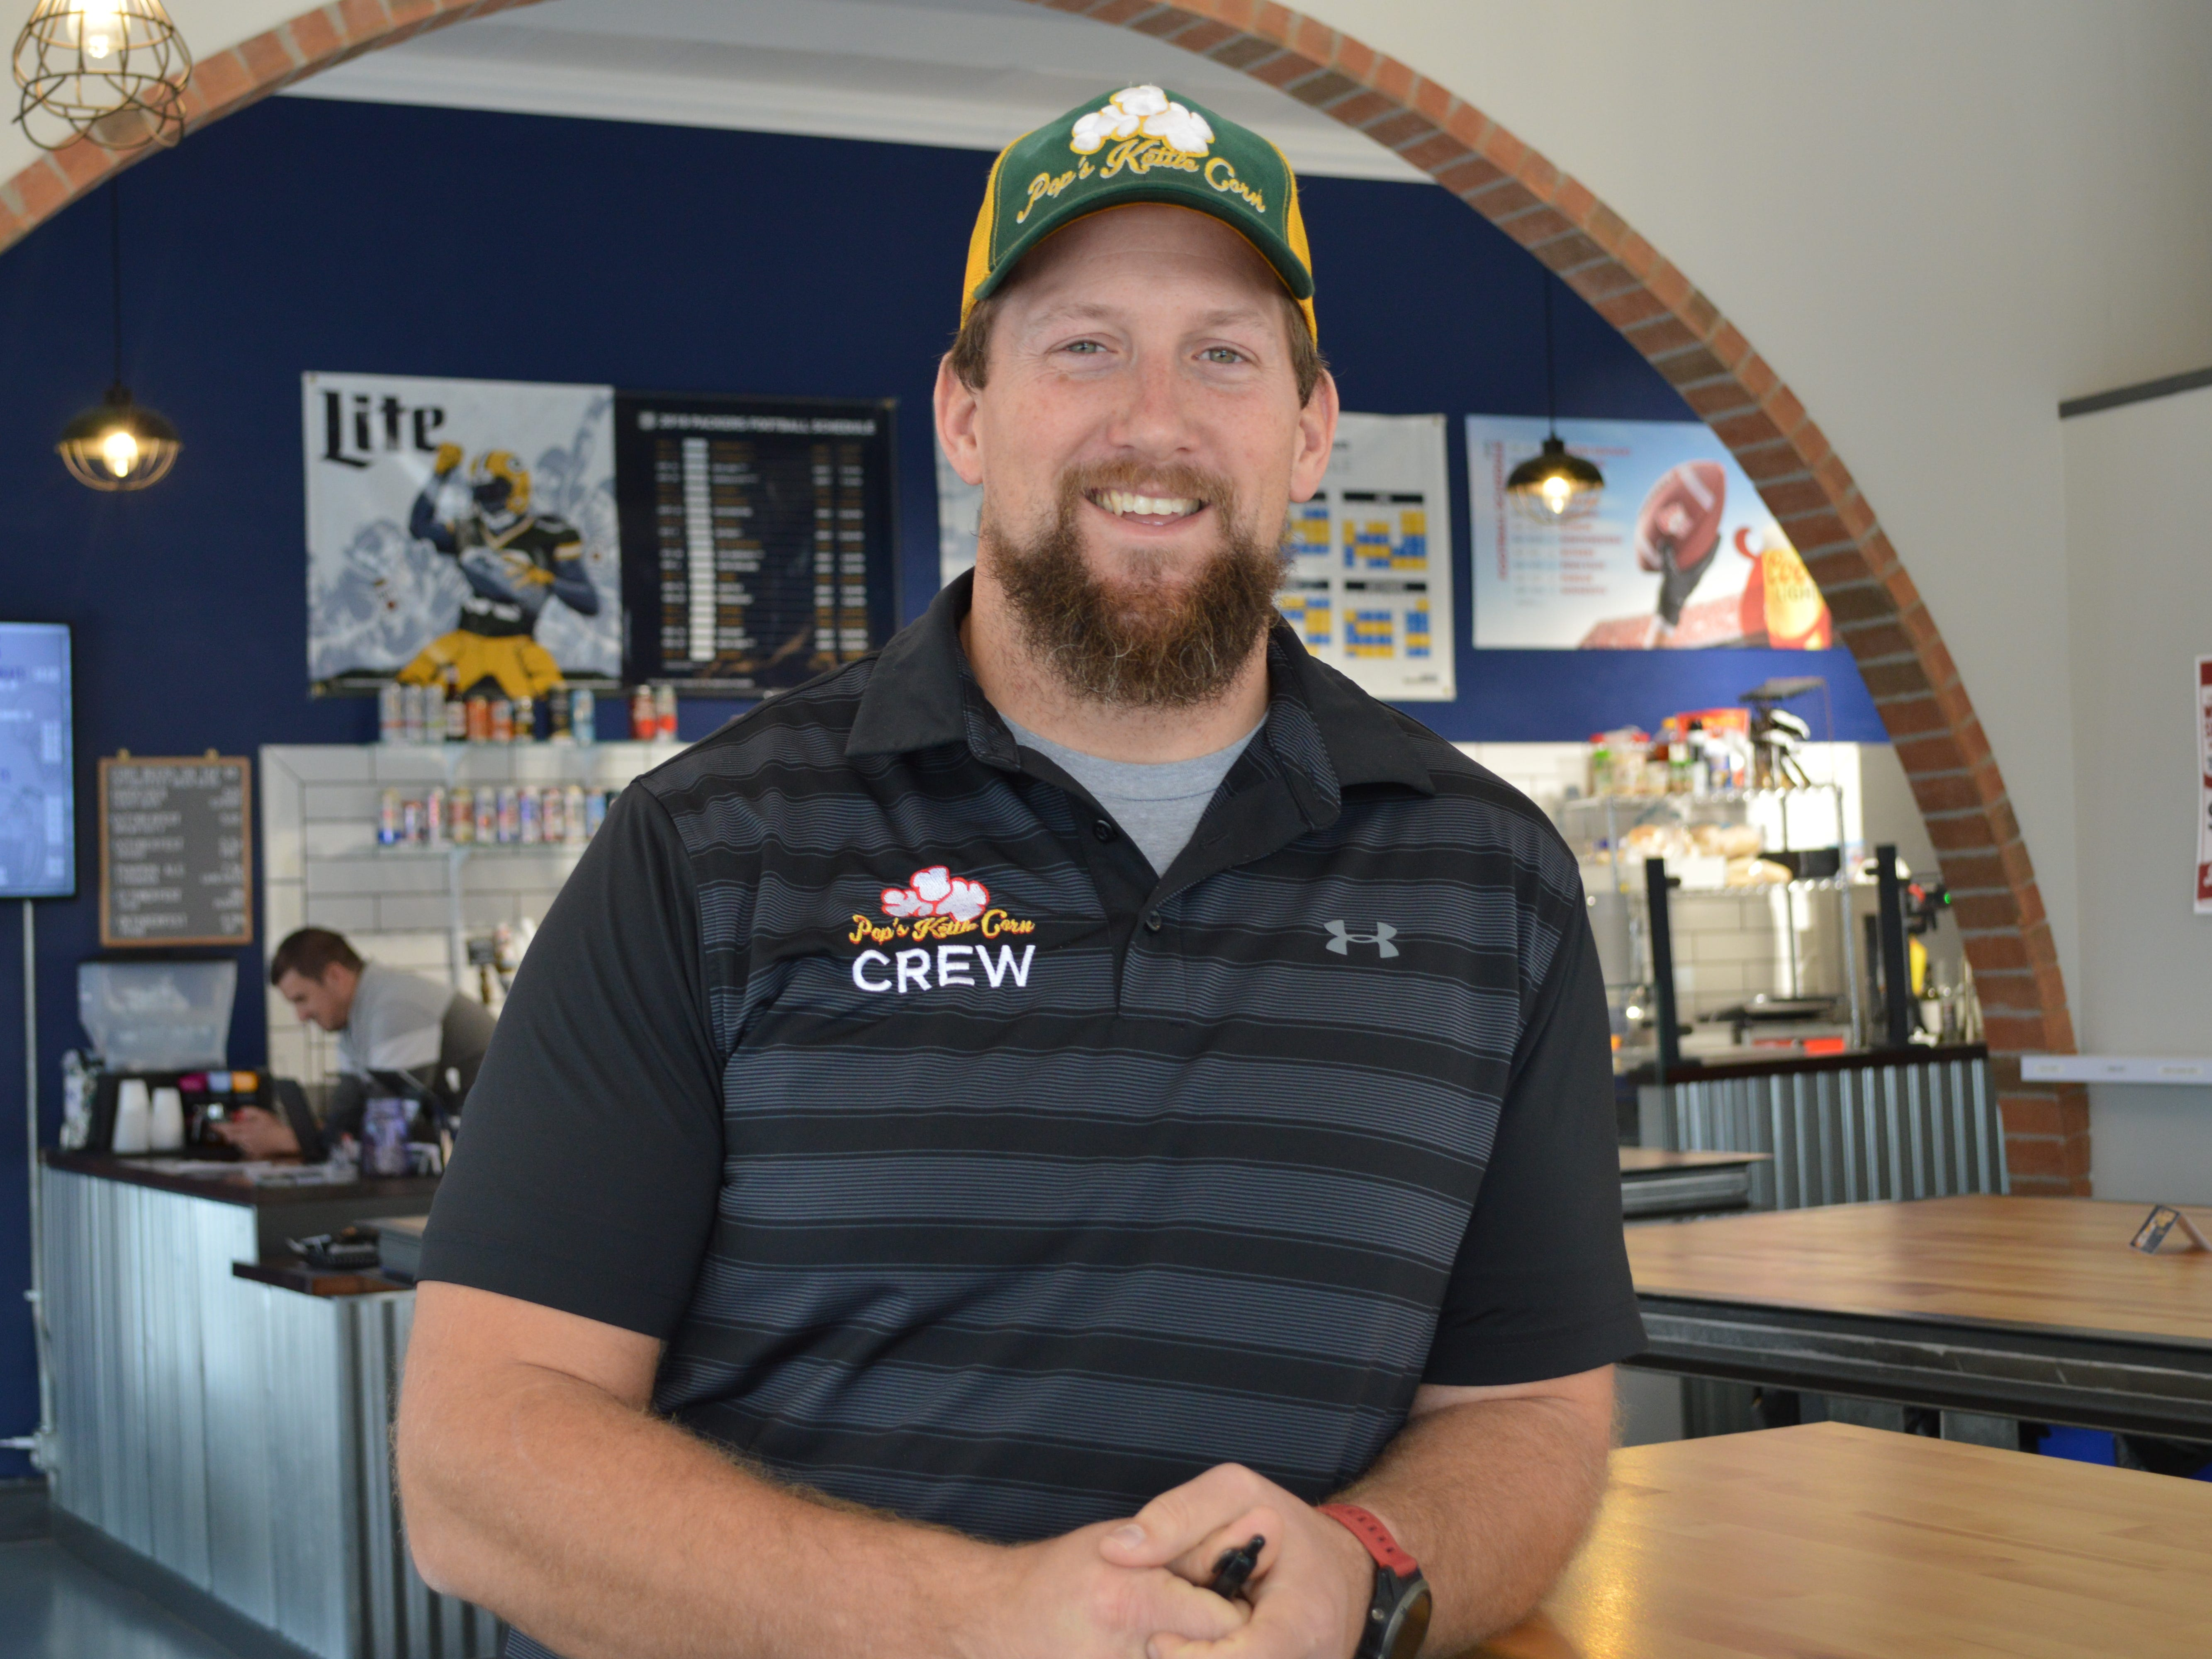 Mark Knudsen, co-owner of 5Points Brew and Sweets, said his business likes to support the local community.